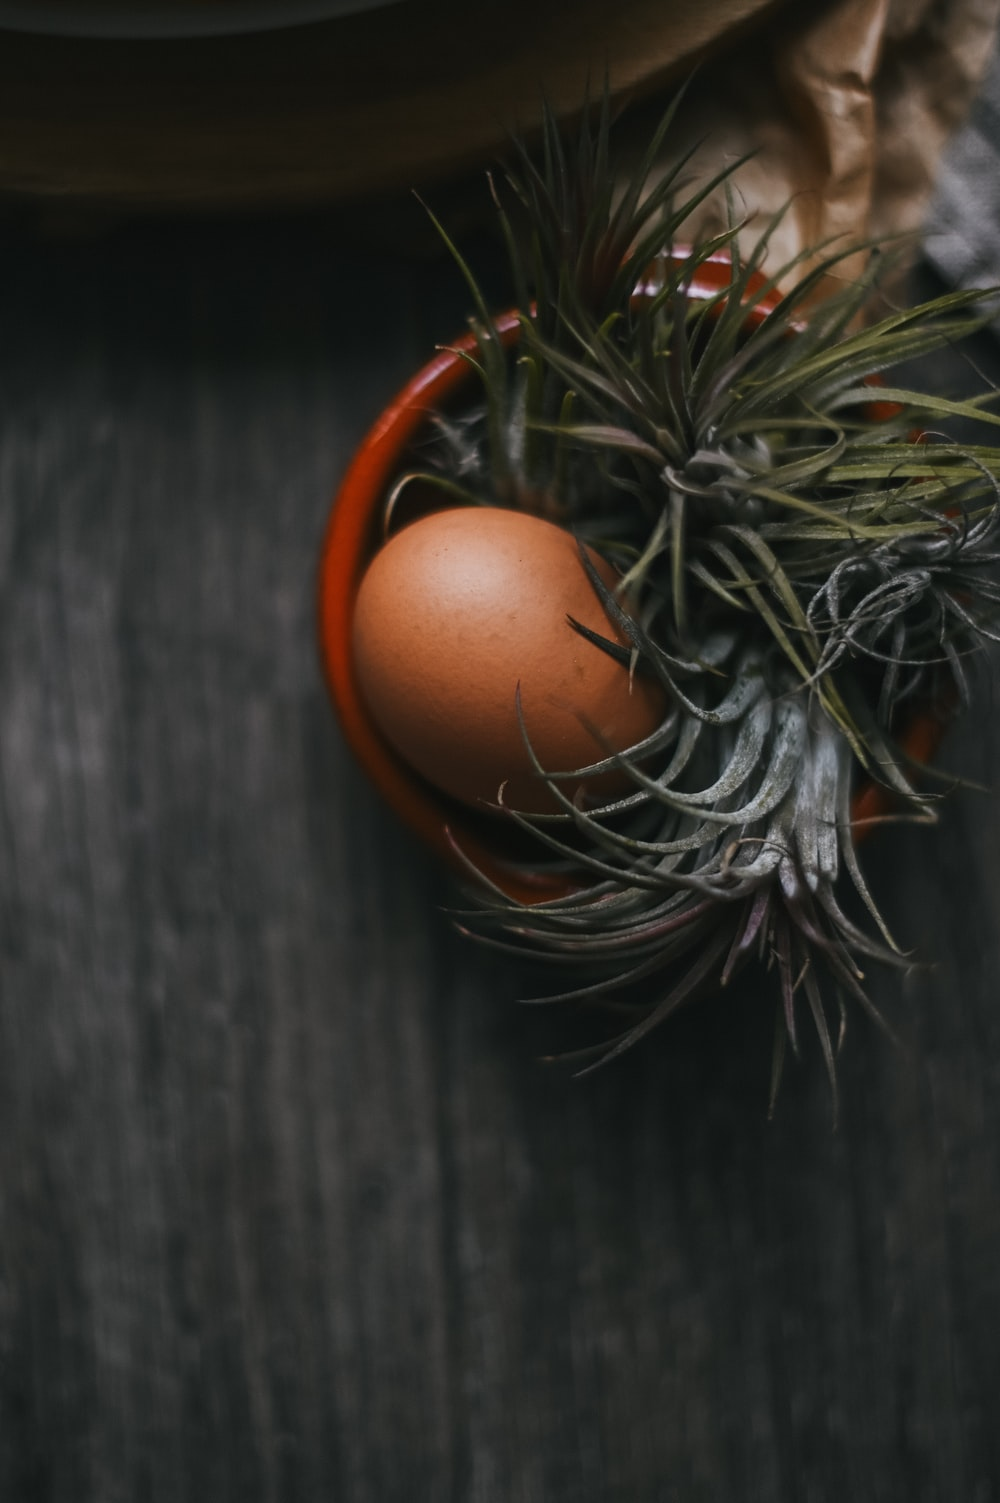 brown egg on gray wooden surface